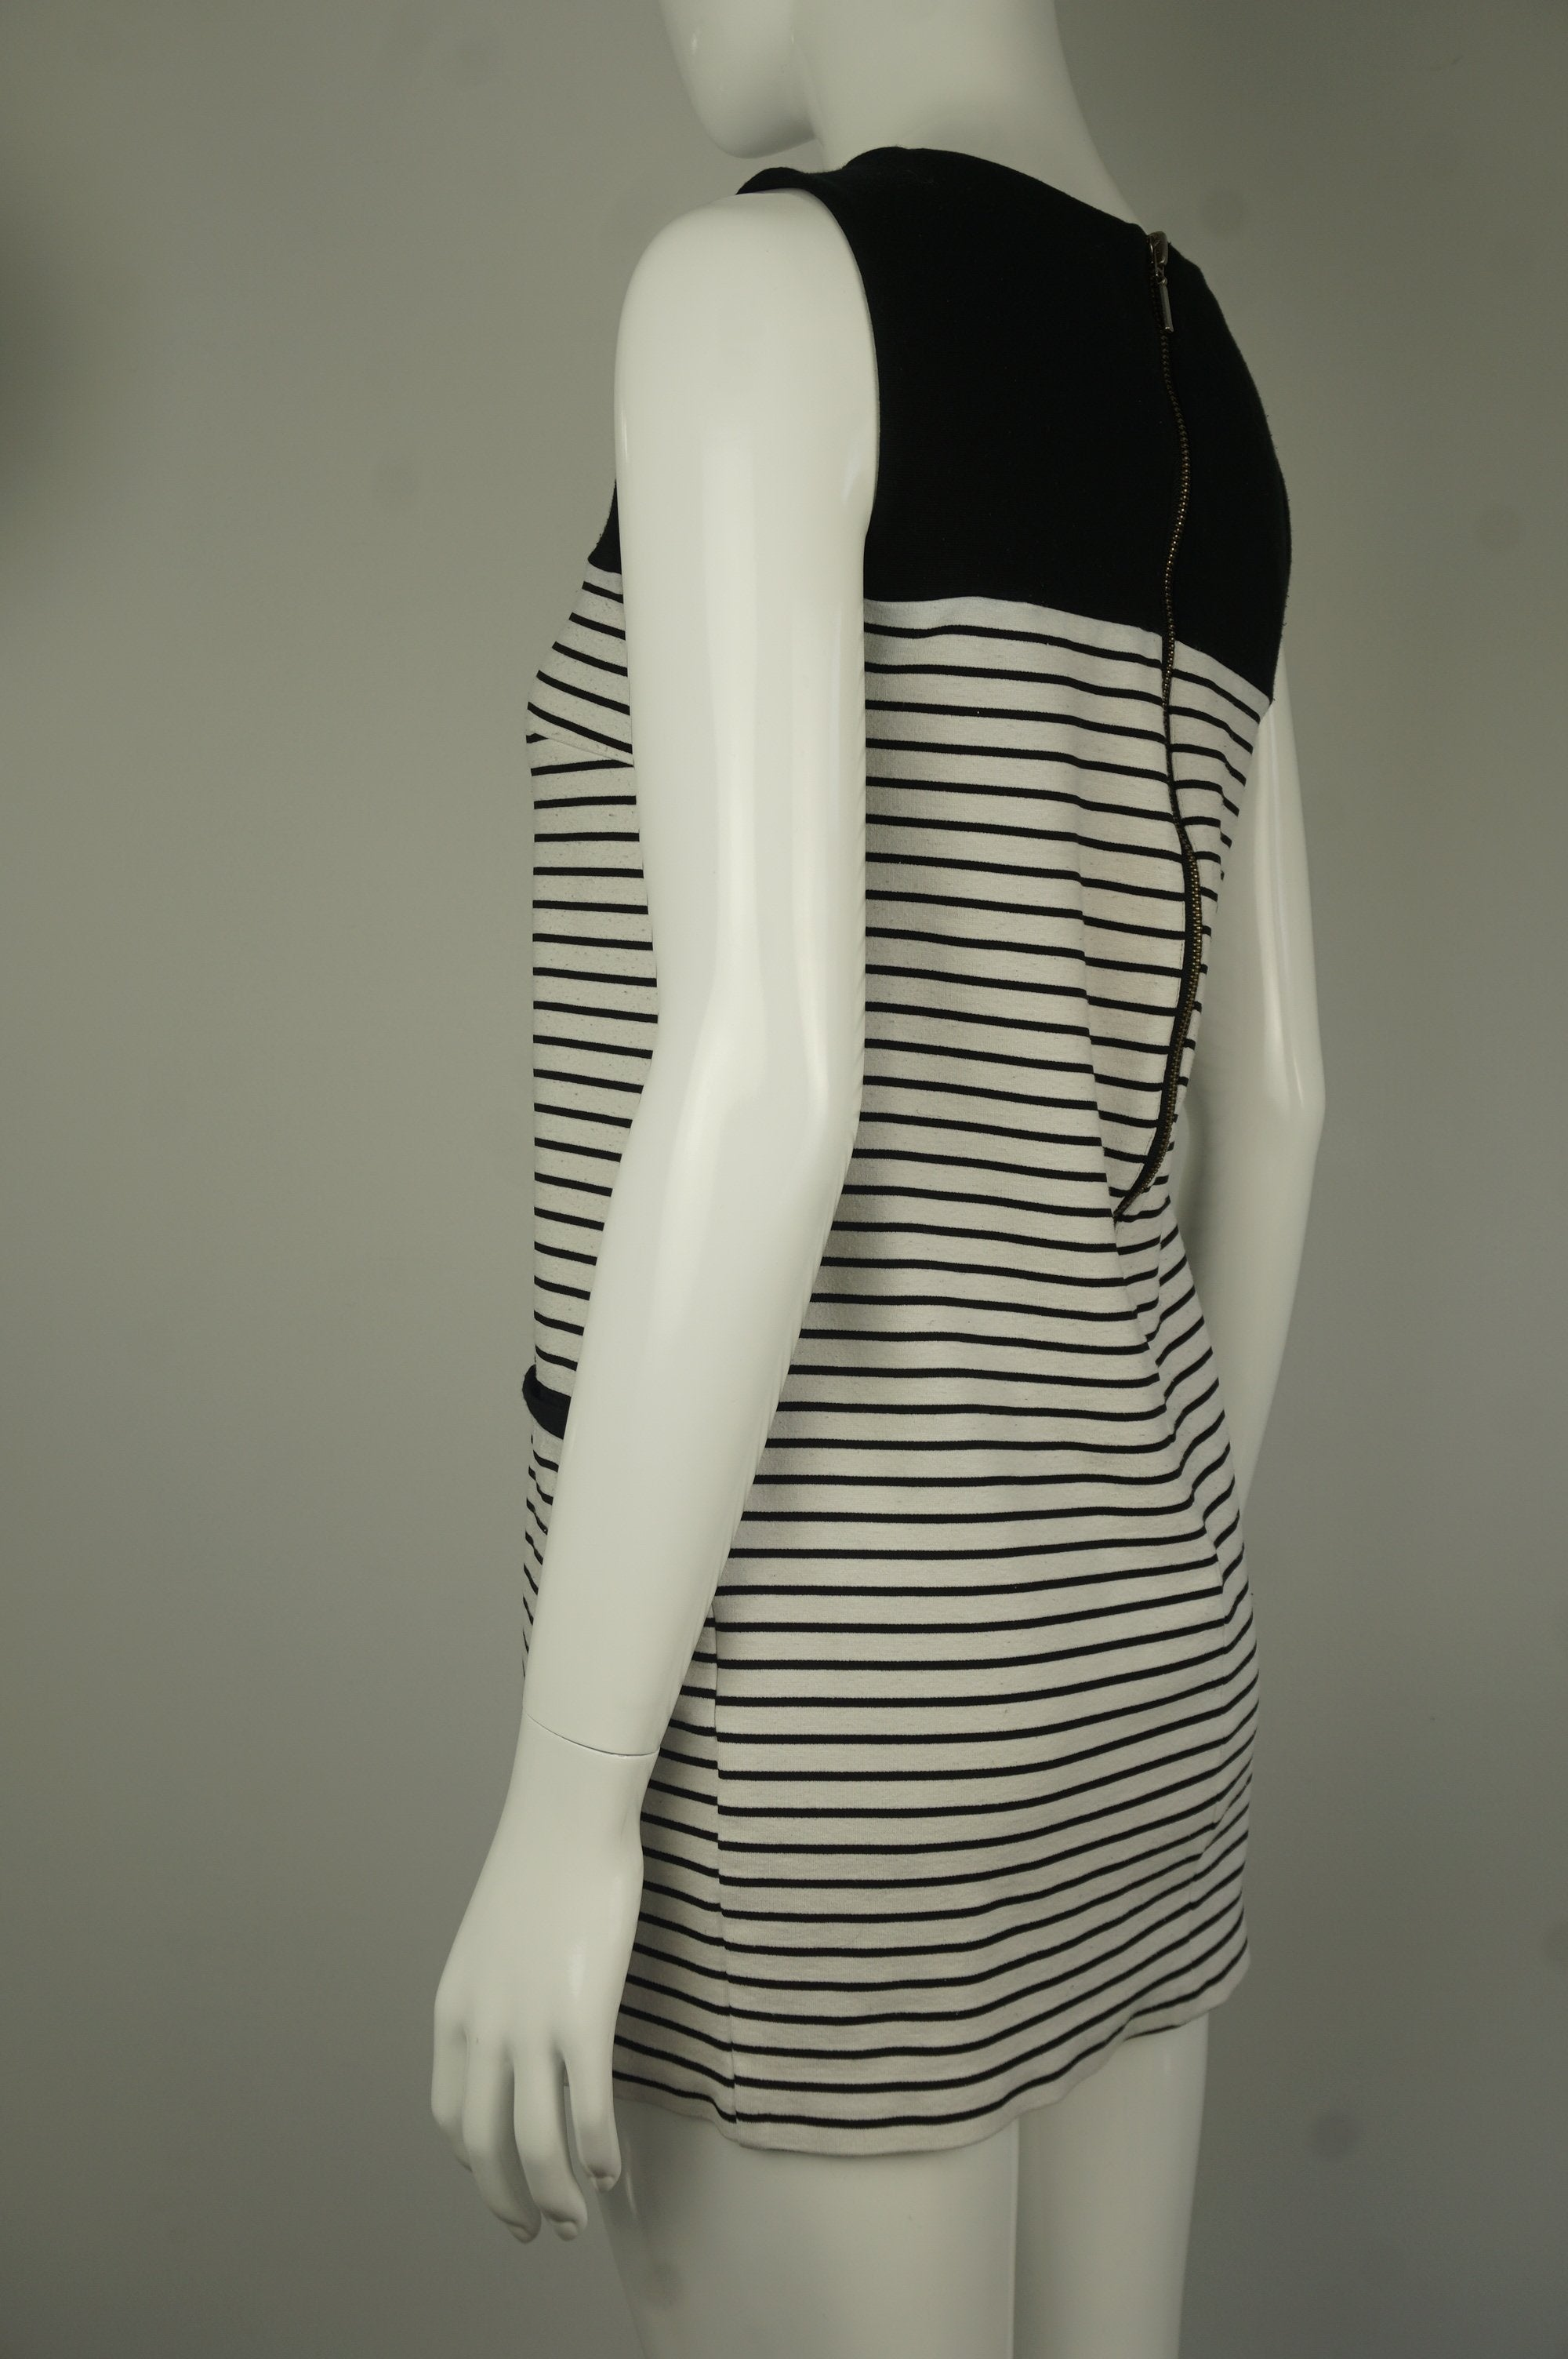 Love 21 Mini Straight Dress with Solid Black Top and Striped B&W bottom, Cute and comfy, this unique Black and White Striped Mini-Dress with Long Zipper in the back is perfect for outing  events and casual hangouts.  , Black, White, Cotton Fabric, women's Dresses & Skirts, women's Black, White Dresses & Skirts, Love 21 women's Dresses & Skirts, Simple Casual Black and White Women's Dress, Straight Cut Comfy Women's Dress, Women's Baseball Dress